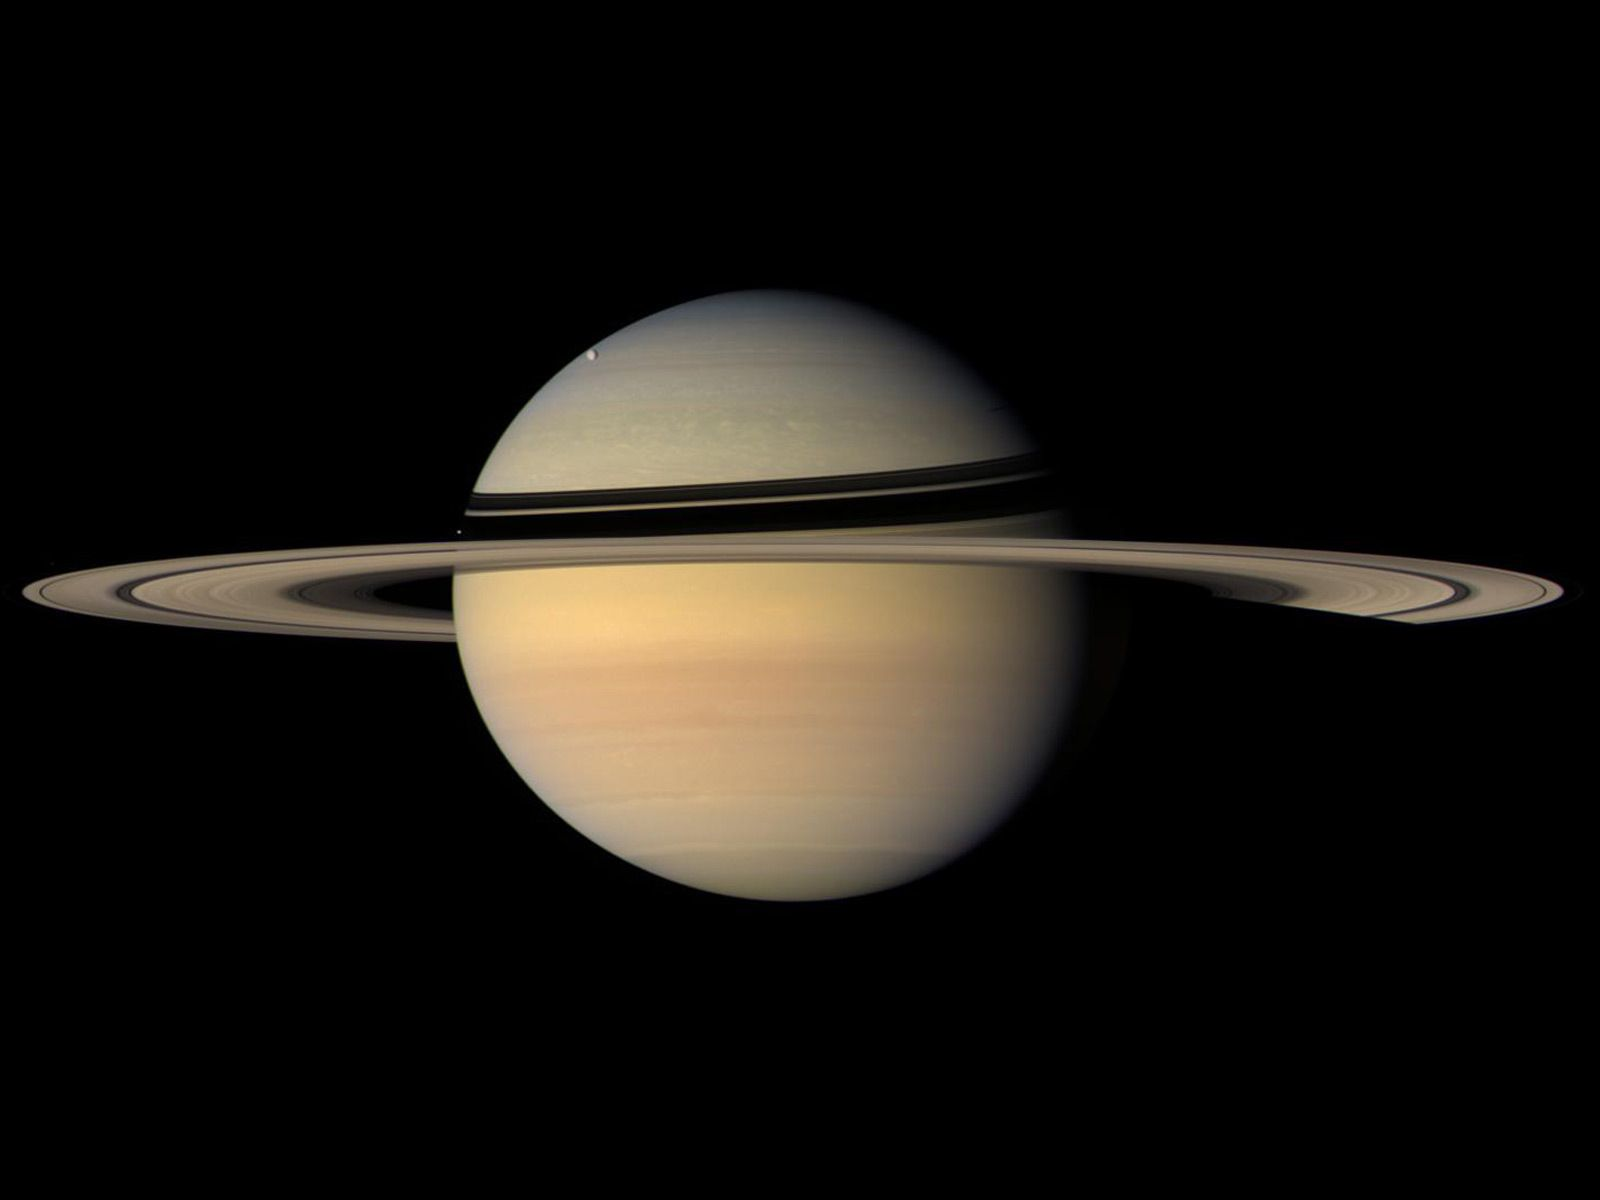 Saturn - Bing Images | Saturn, Saturn planet, Planets